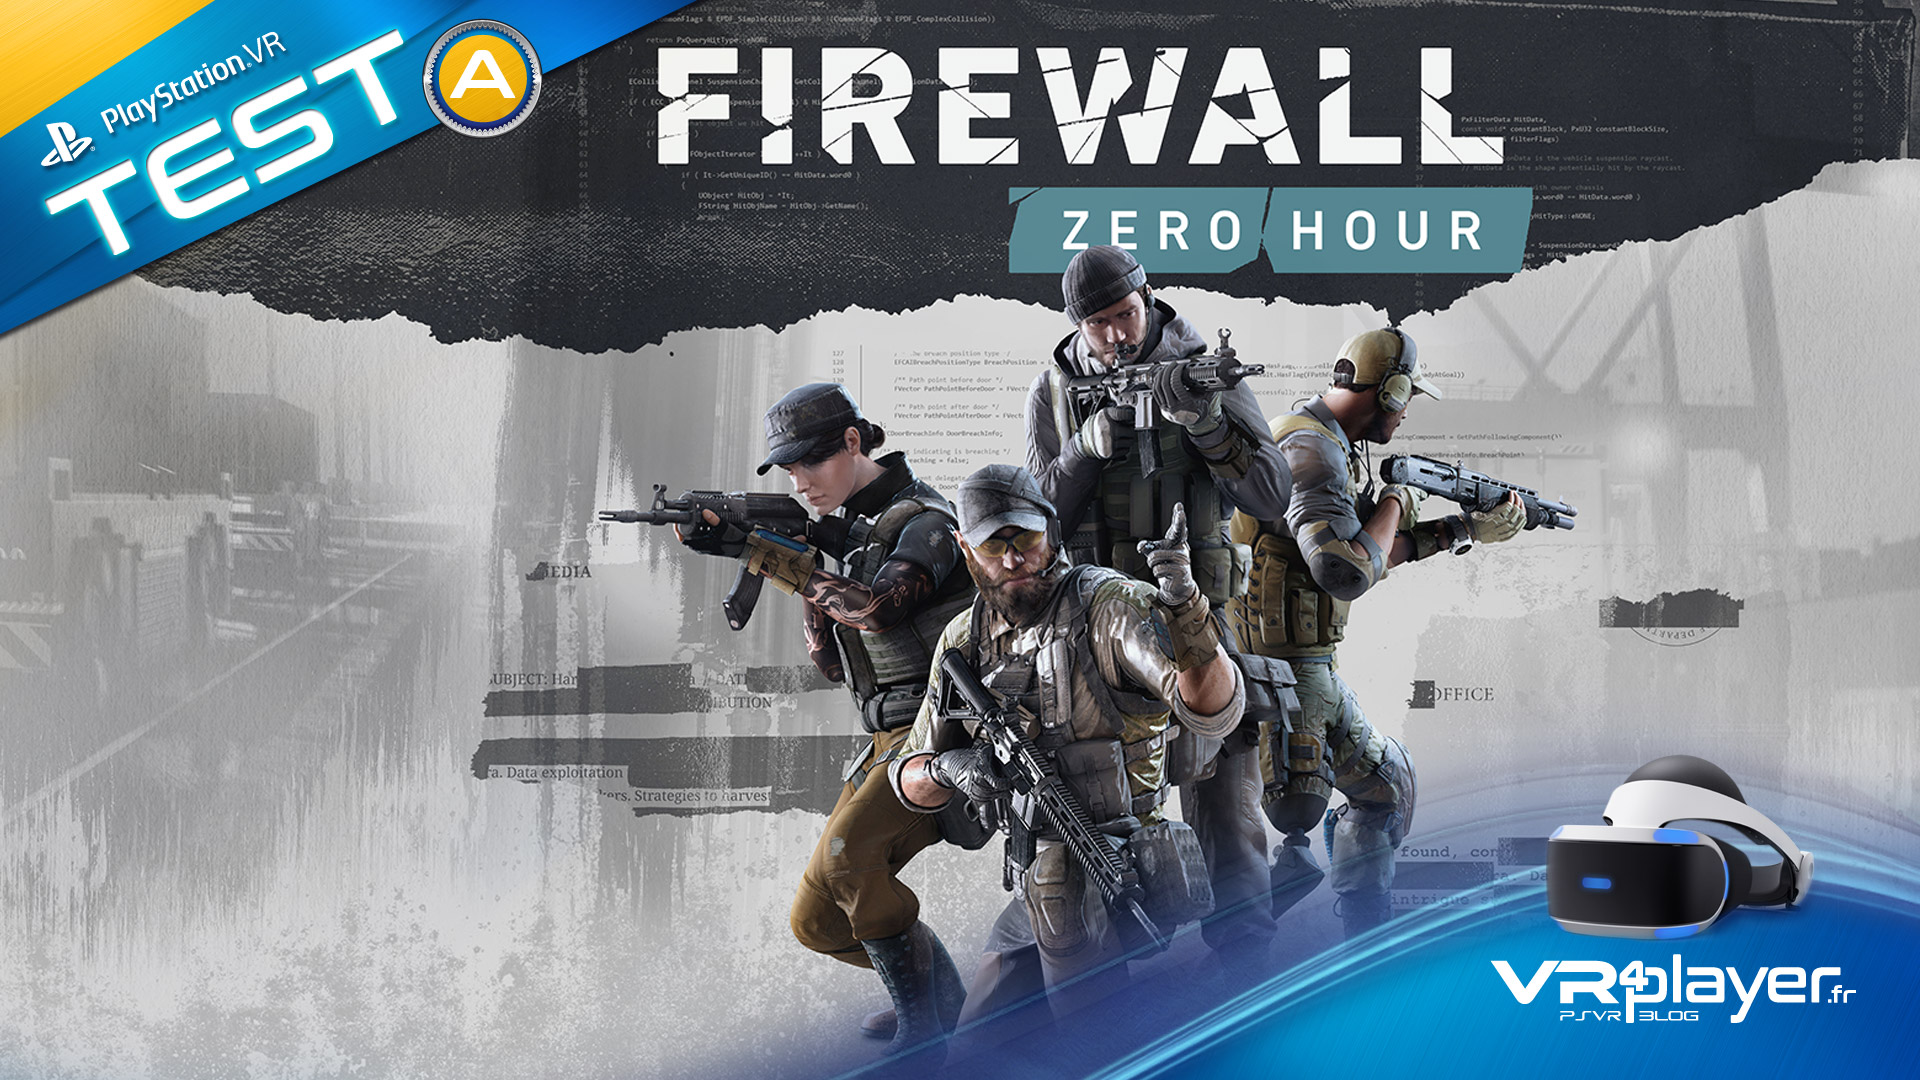 Firewall Zero Hour le test vr4player.fr